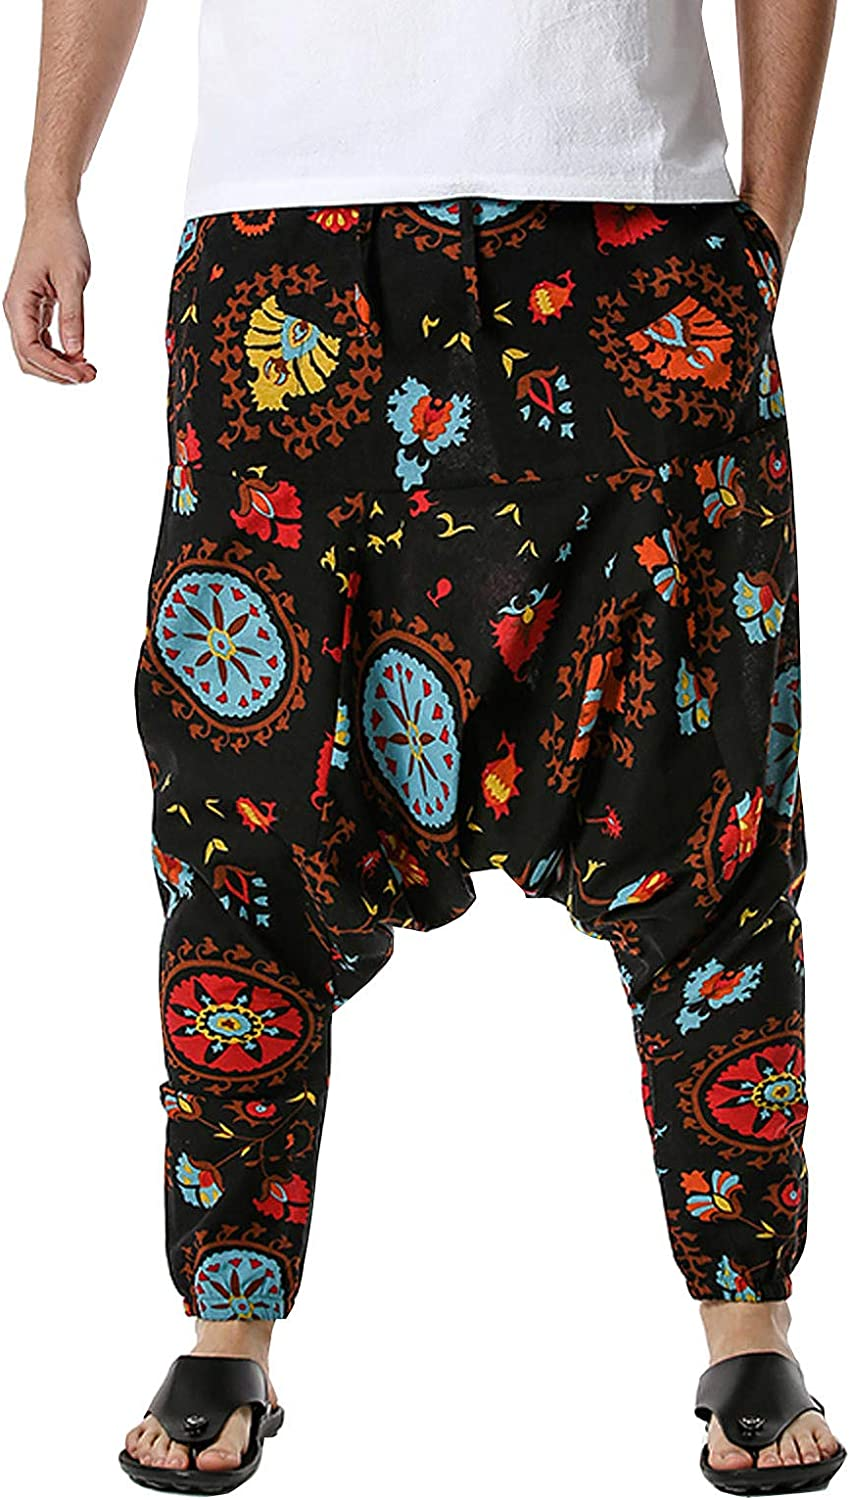 Unisex Harem Pants Hippie Boho Yoga Baggy Gypsy Capri Alad Outlet ☆ Free Shipping 70% OFF Outlet